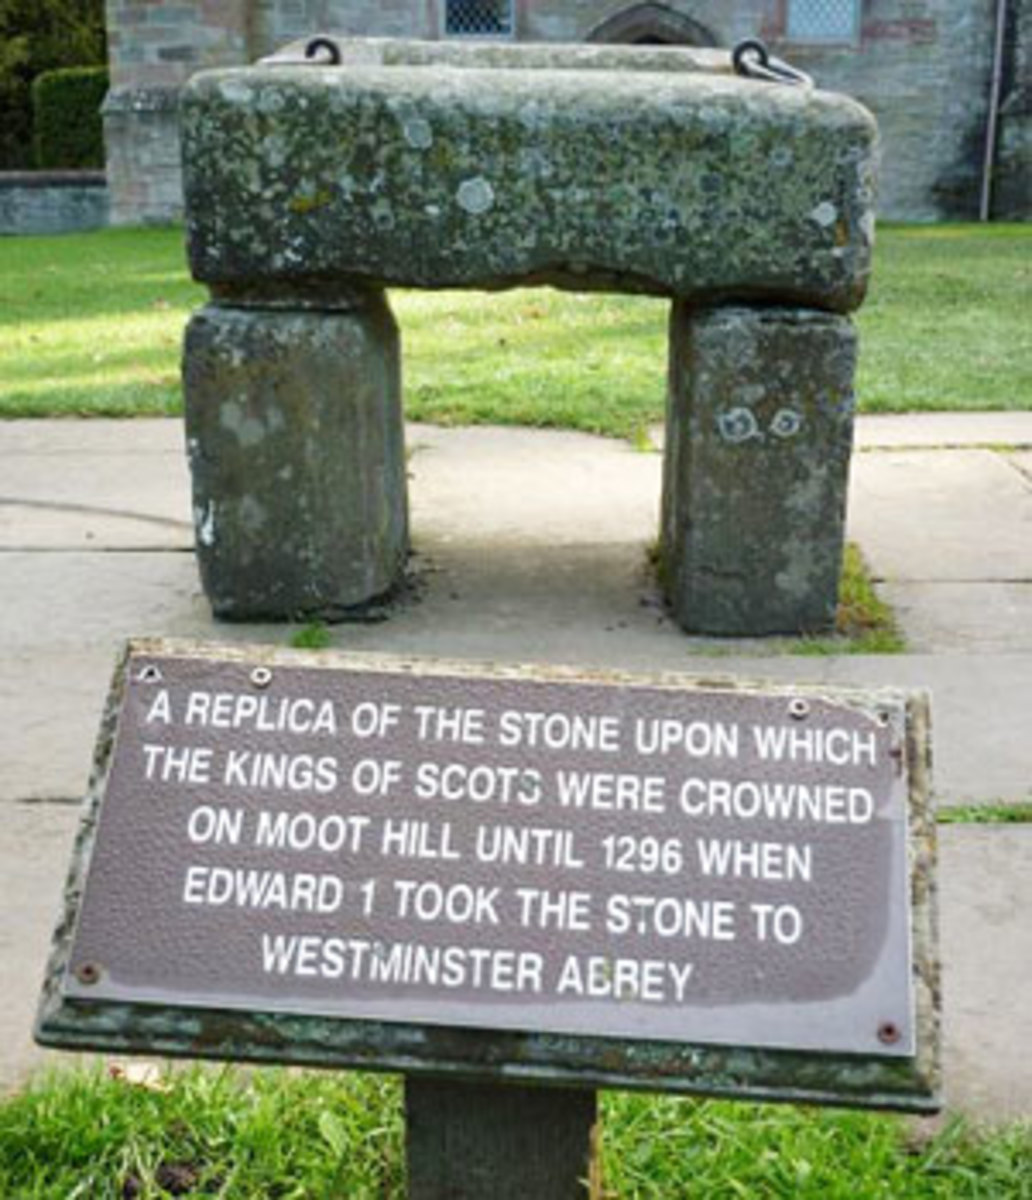 Copy of the Stone of Scone